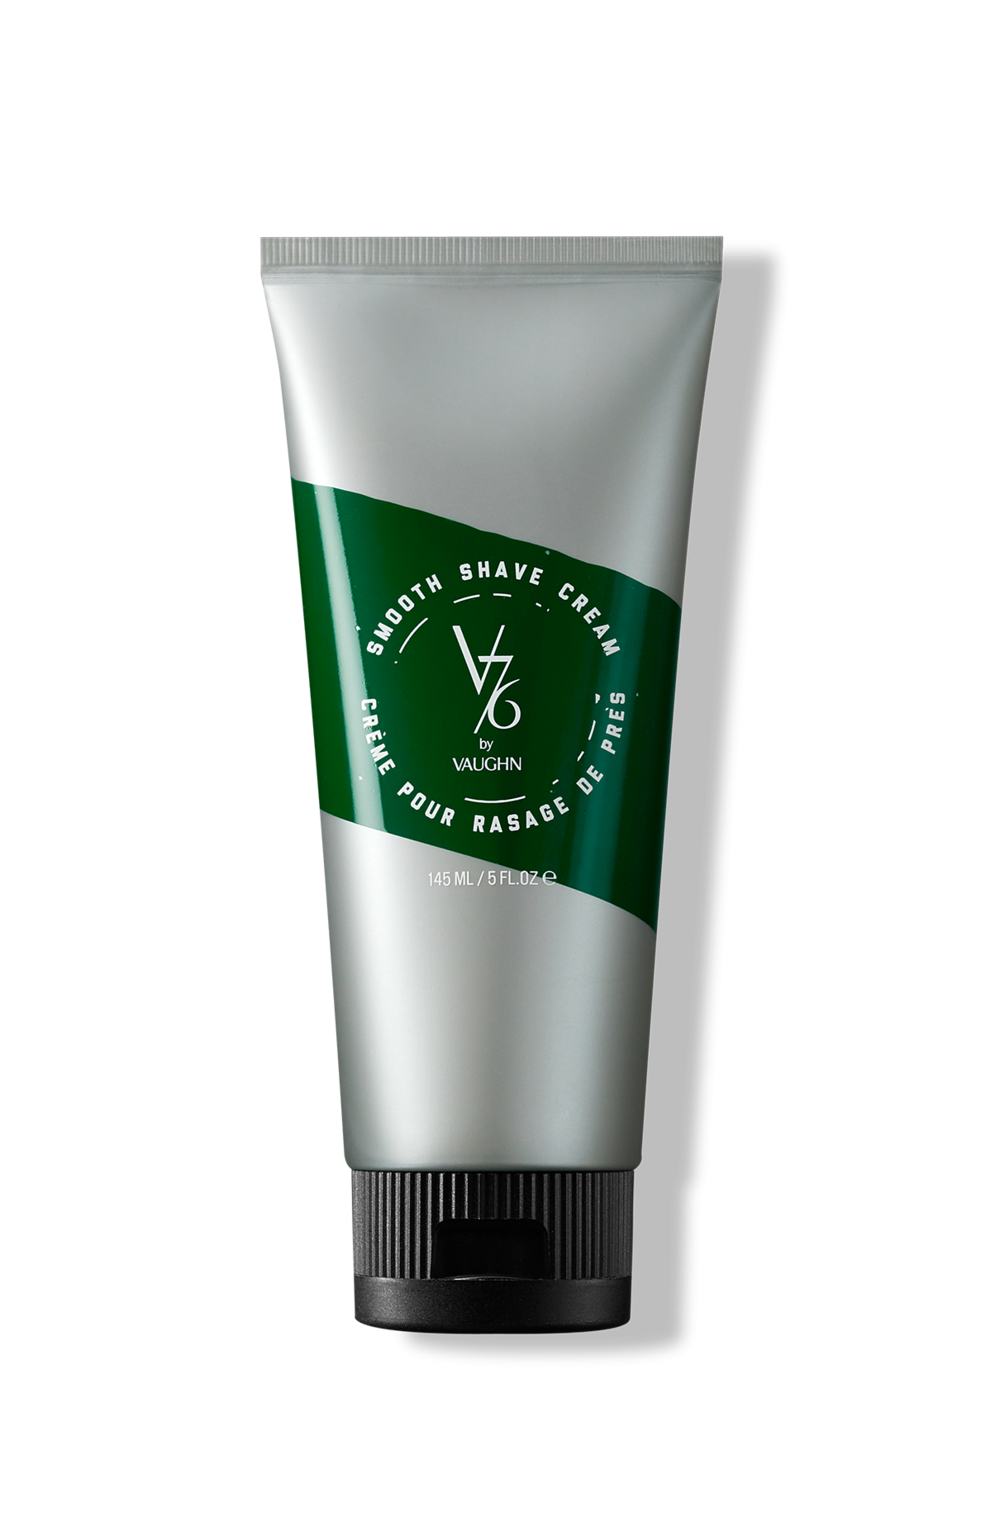 V76 by Vaugn  Smooth Shave Cream, 5 0z. $19.00